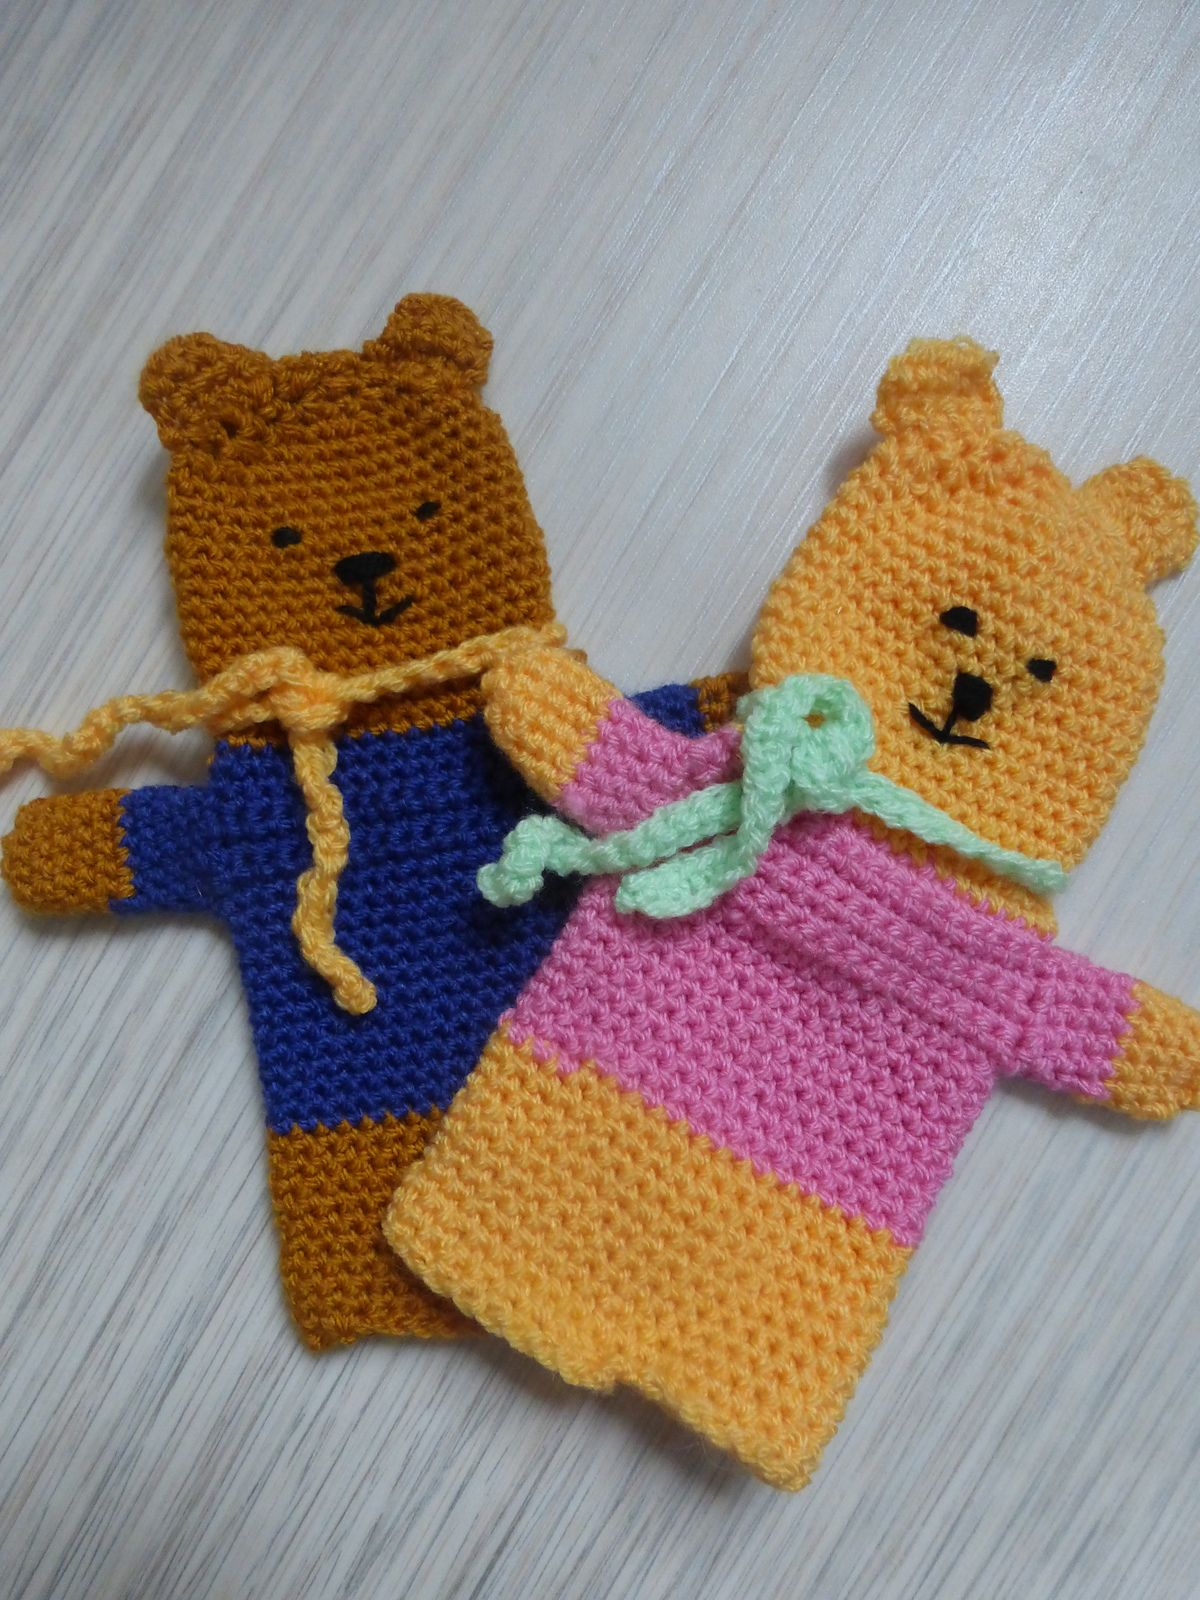 Charity Teddy By Bluebird And Daisy - Free Crochet Pattern ...